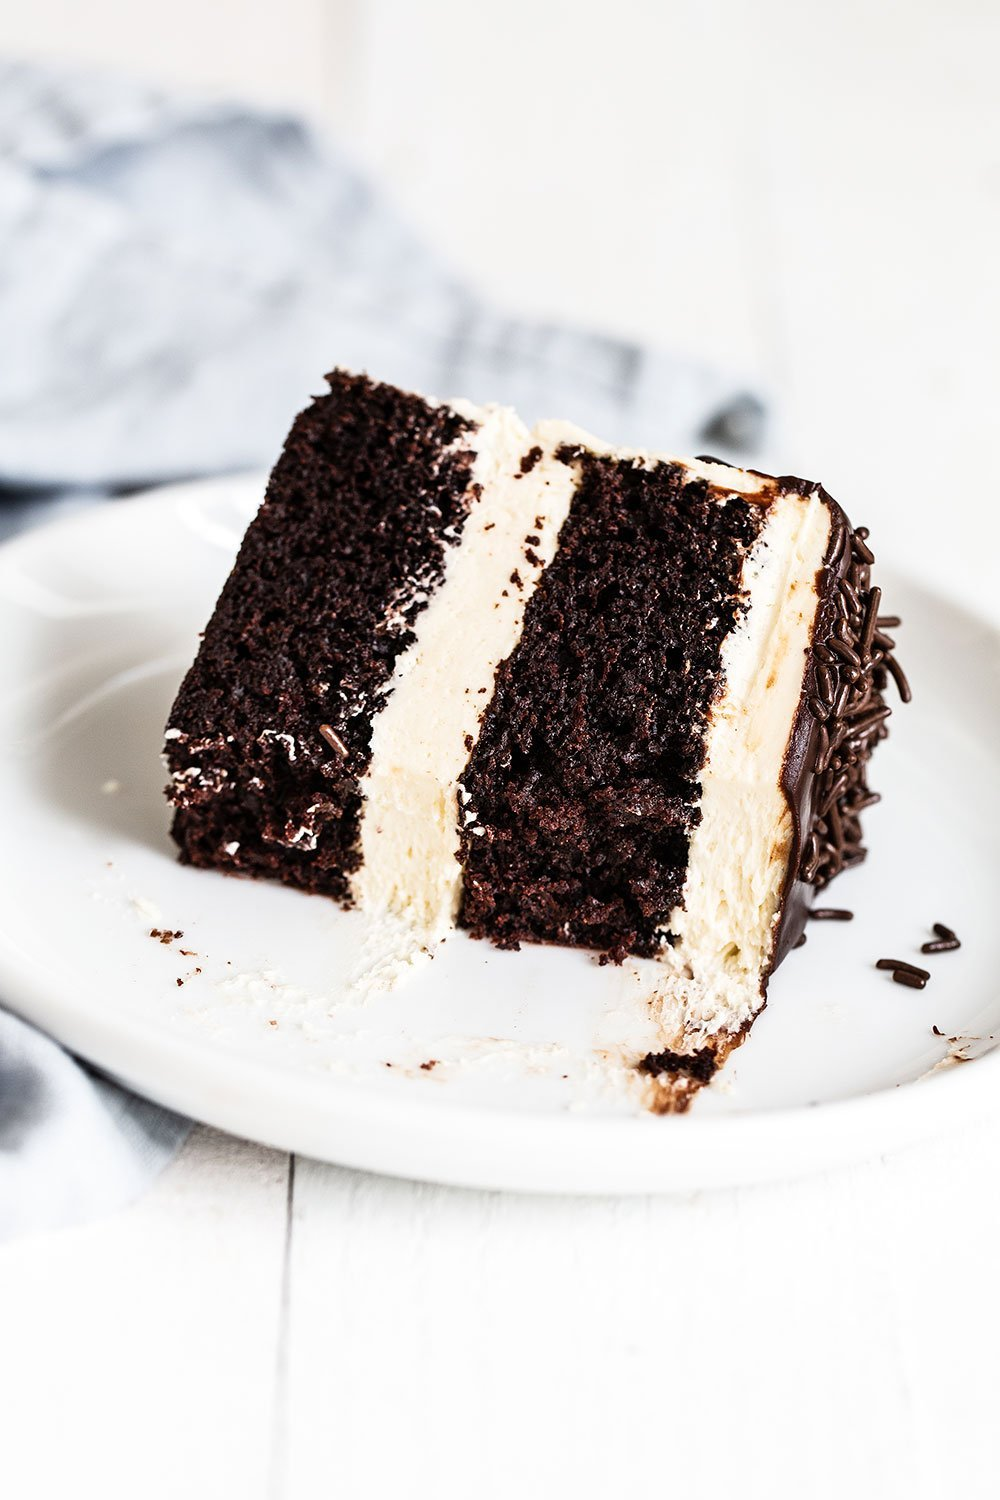 Slice of cake with forkfuls removed